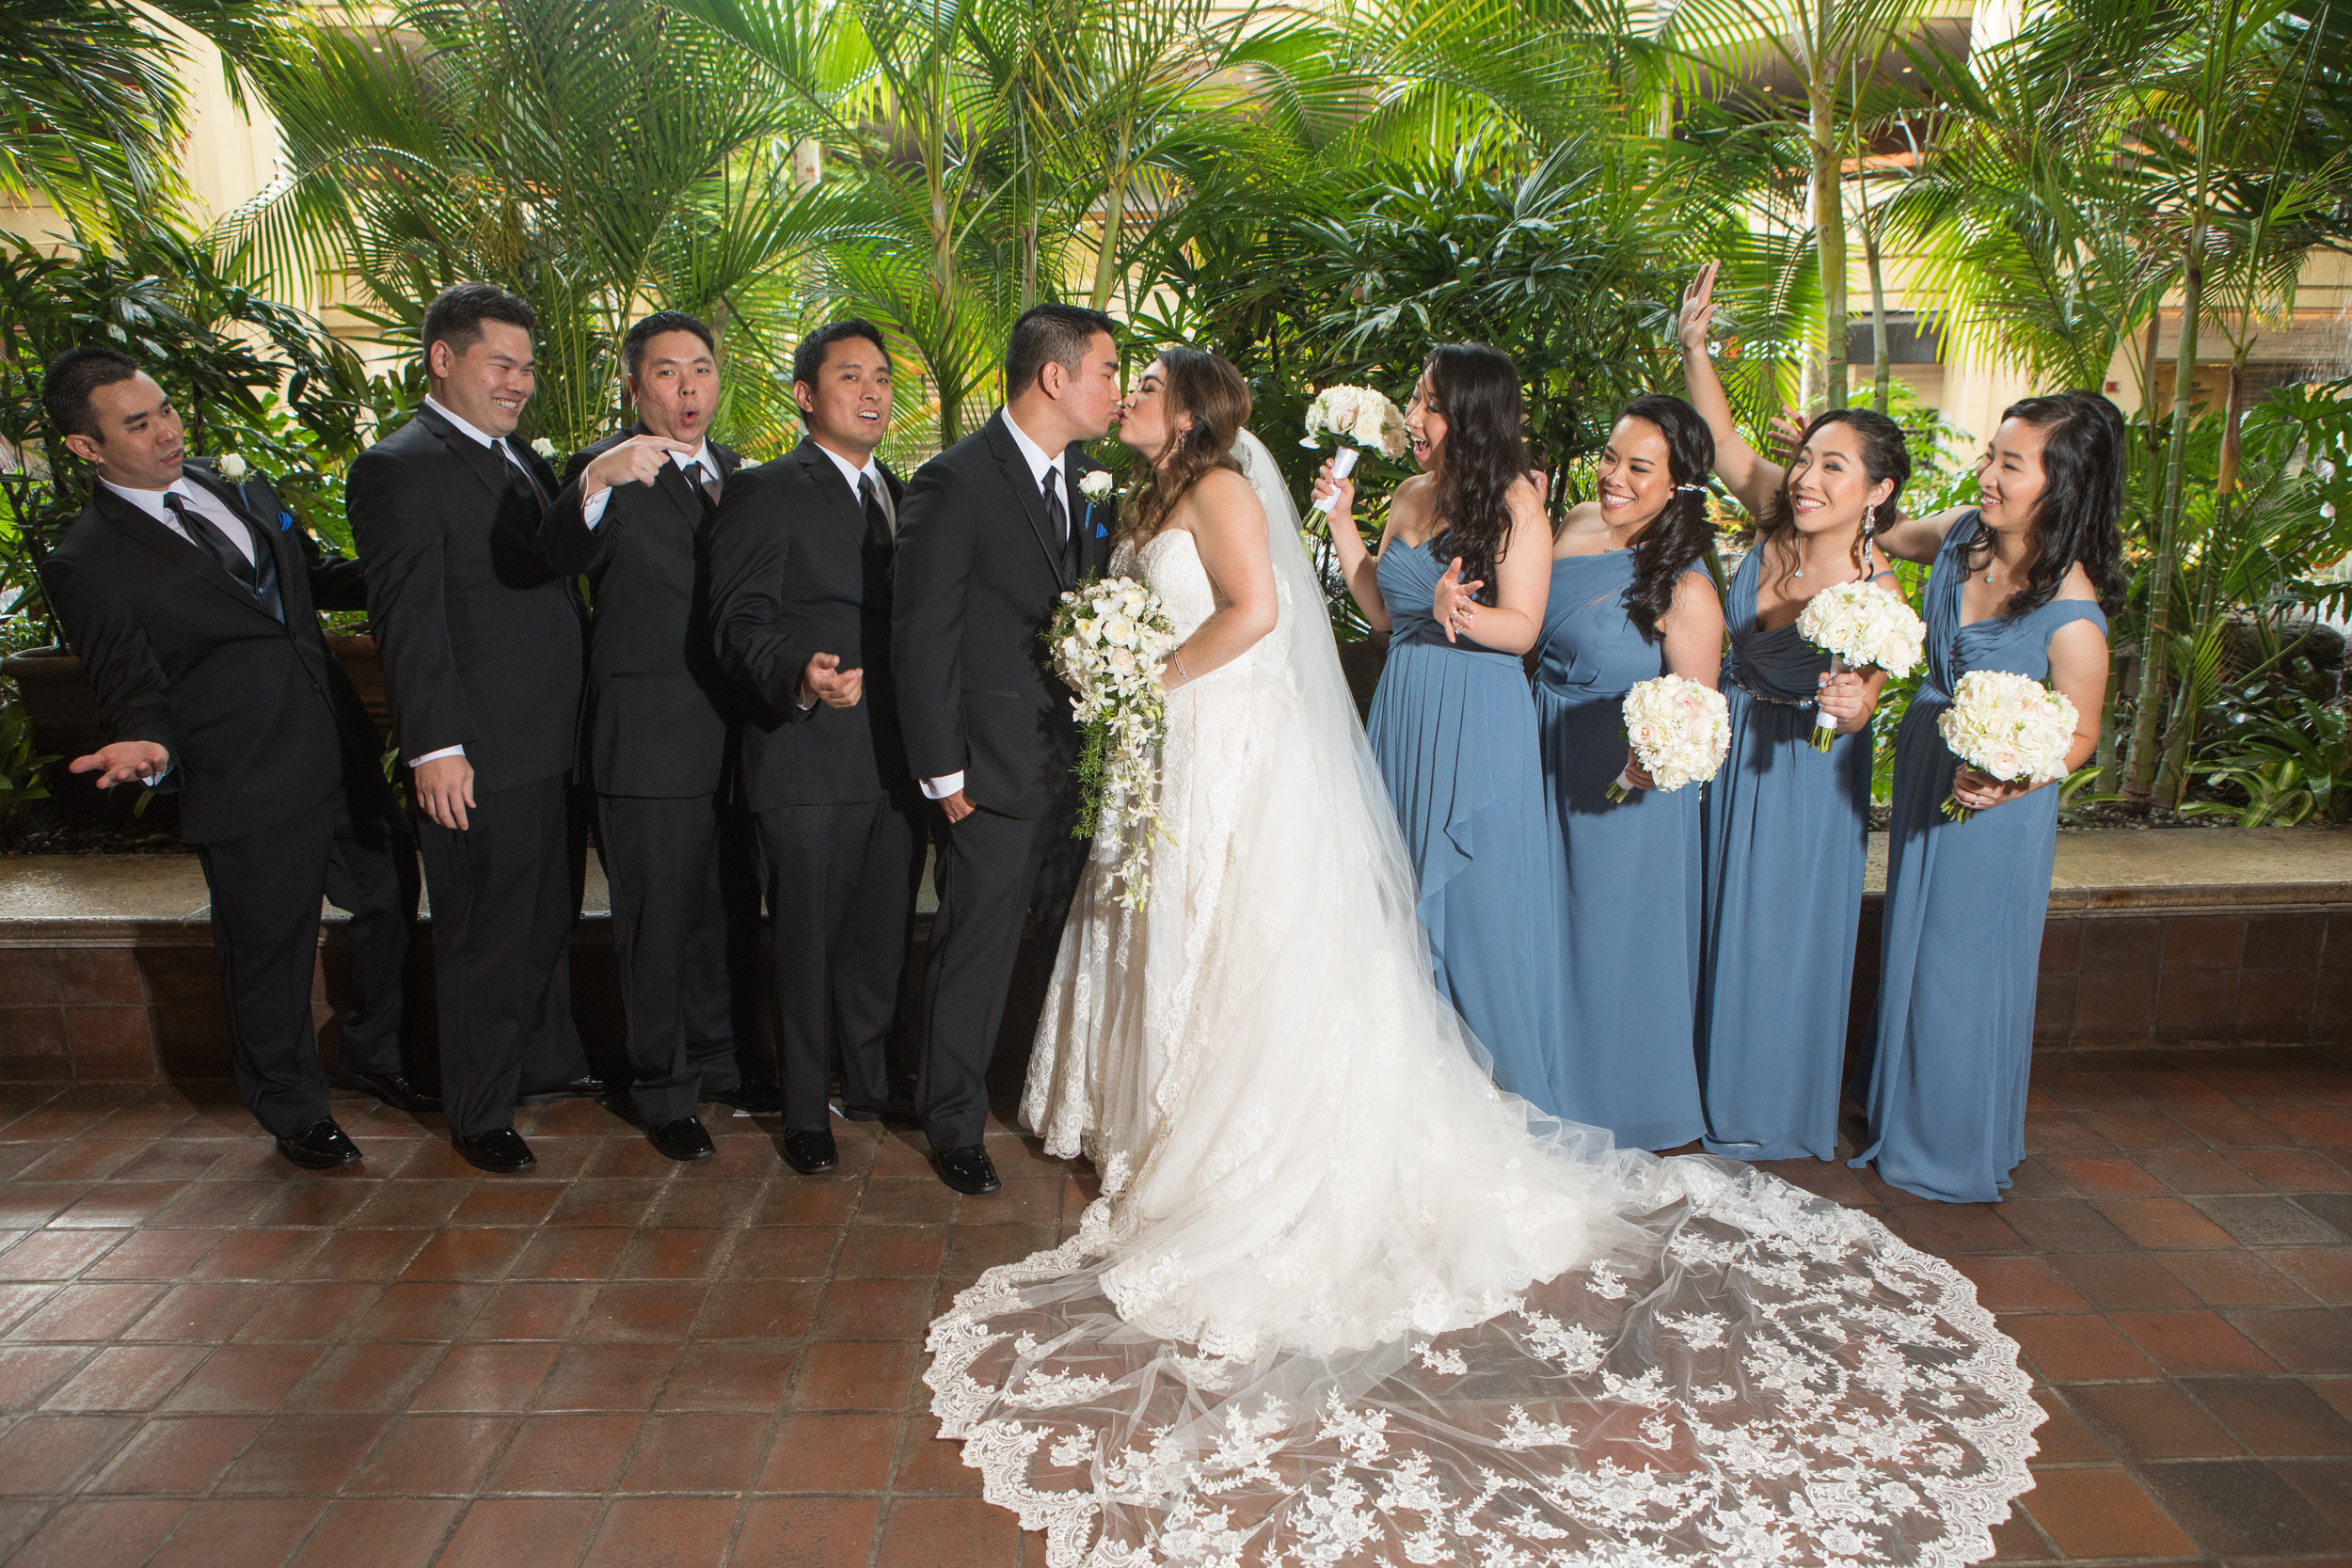 14-hyatt-regency-wedding.jpg